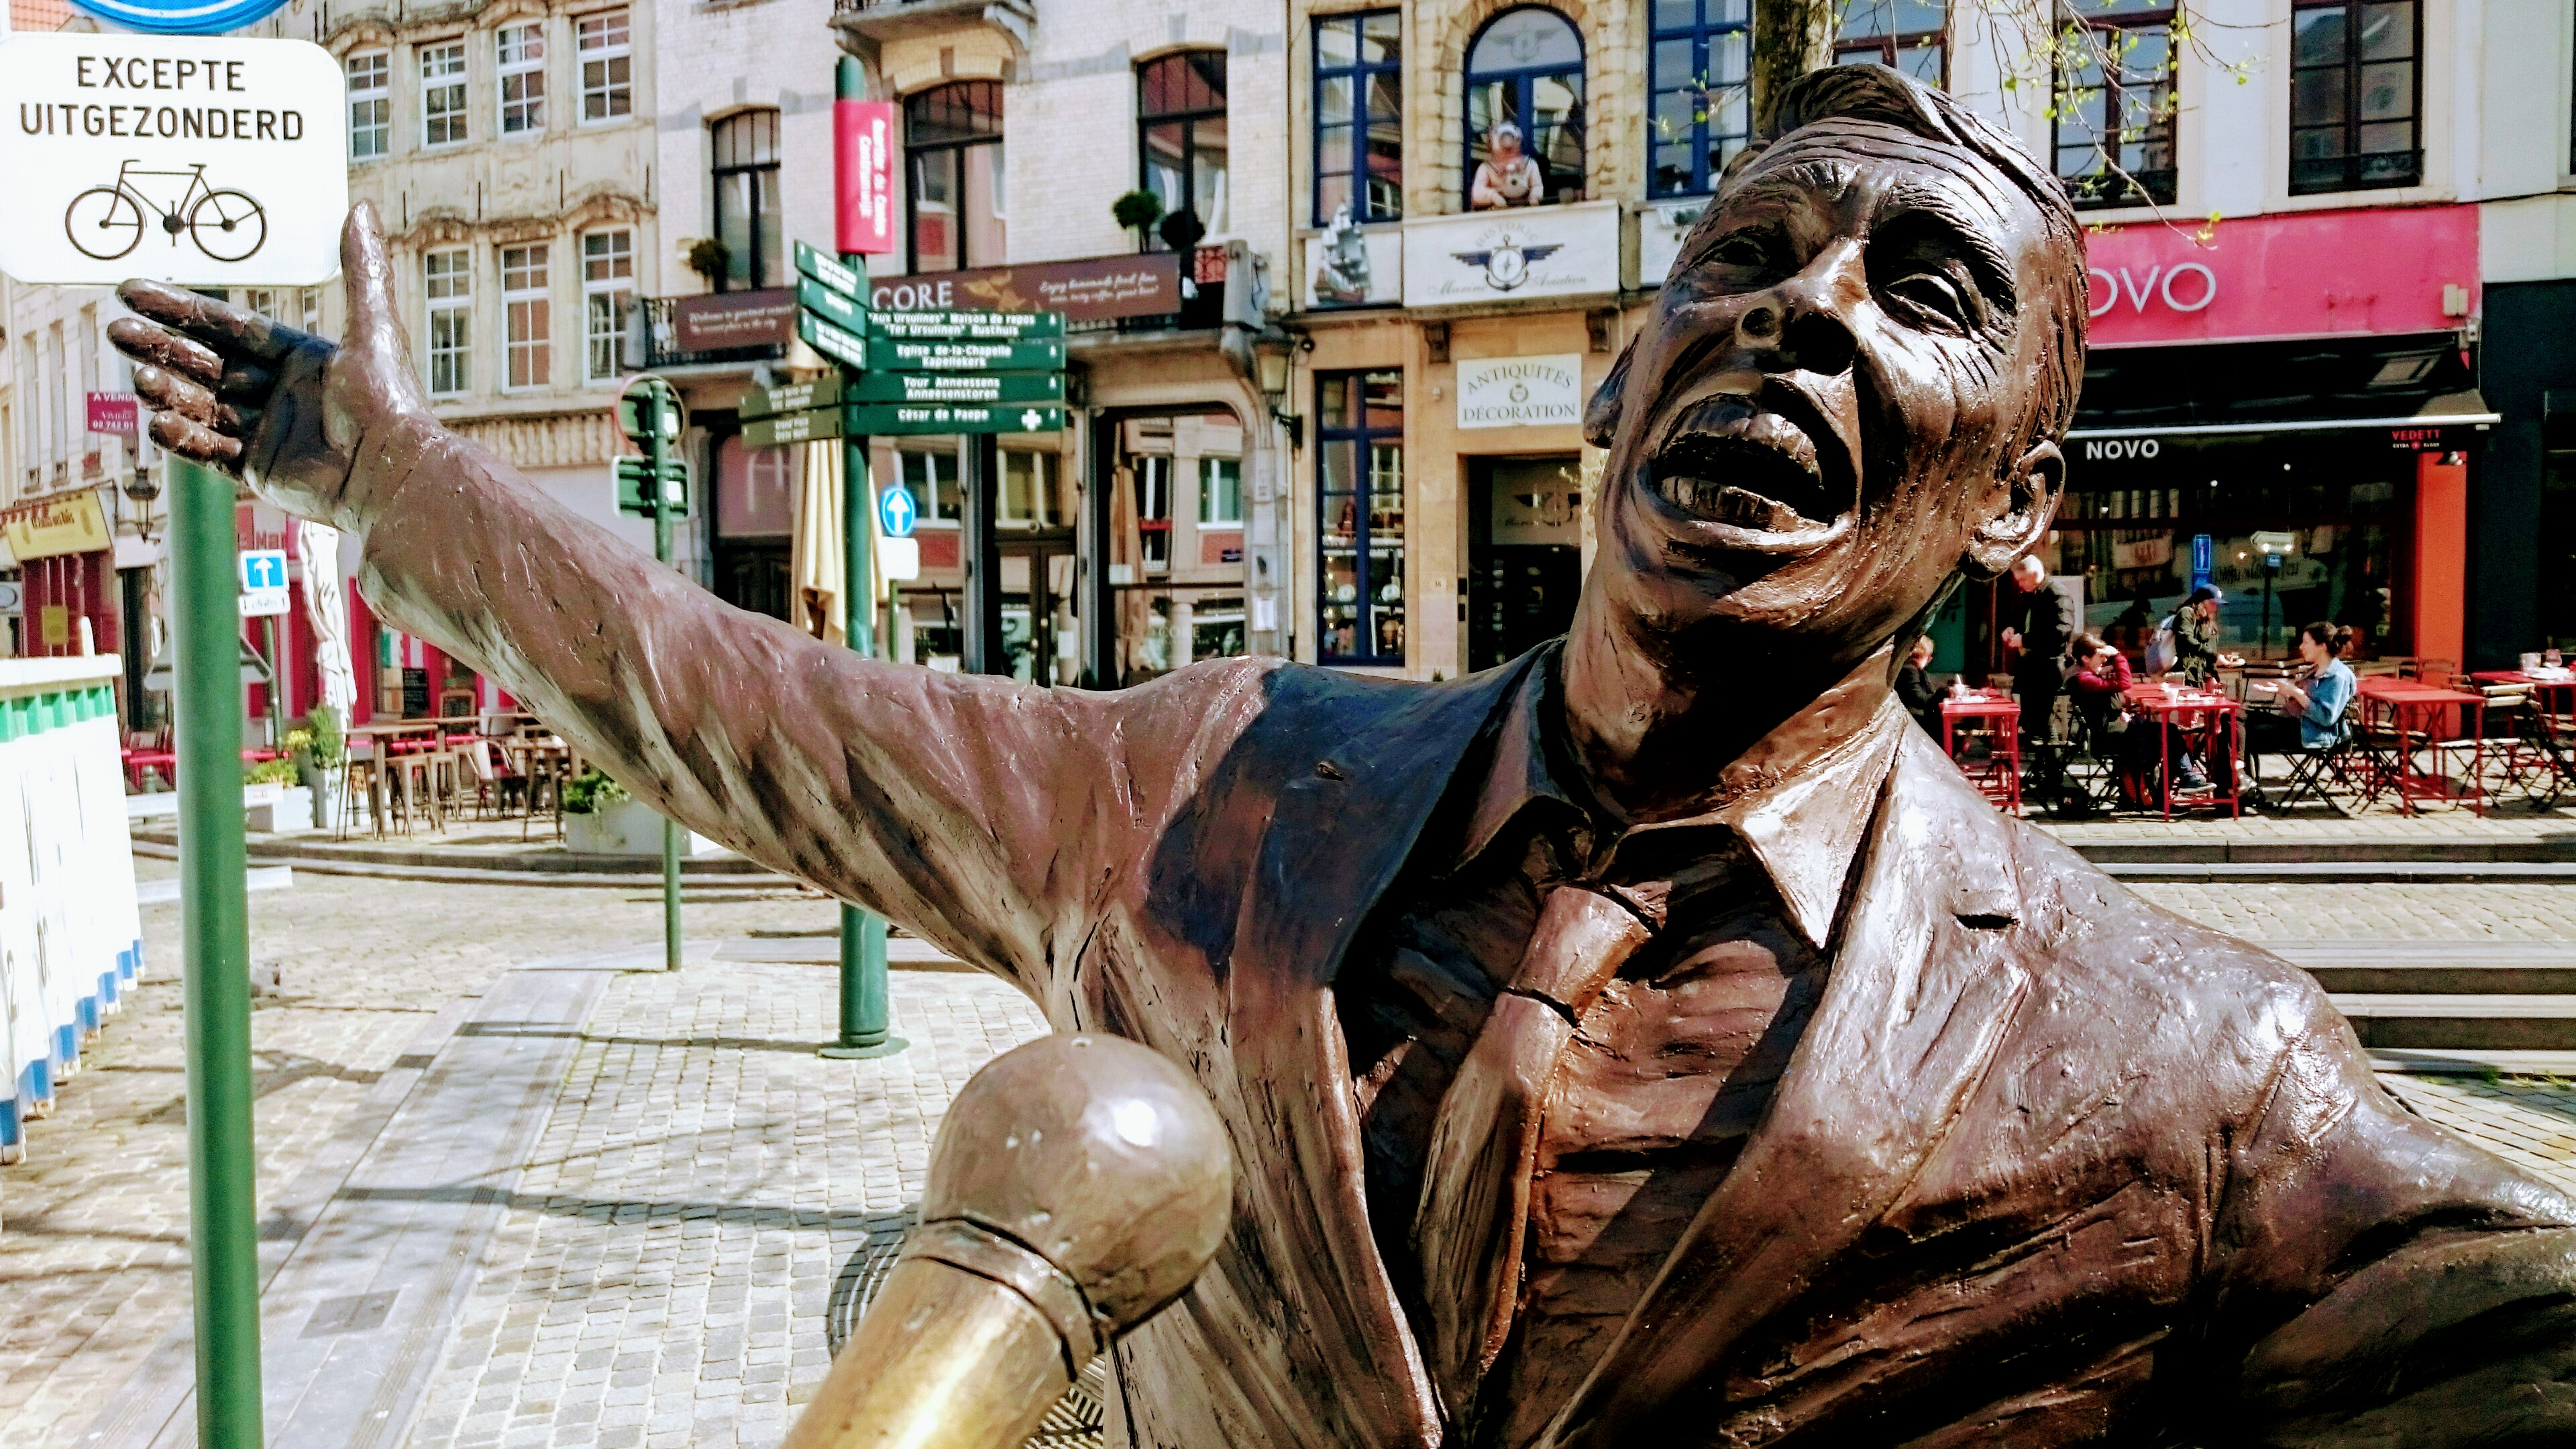 Jacques Brel, Brussels, Chansonnier, Singer, Tour, Sightseeing, Auditour, Belgium, walk, songs